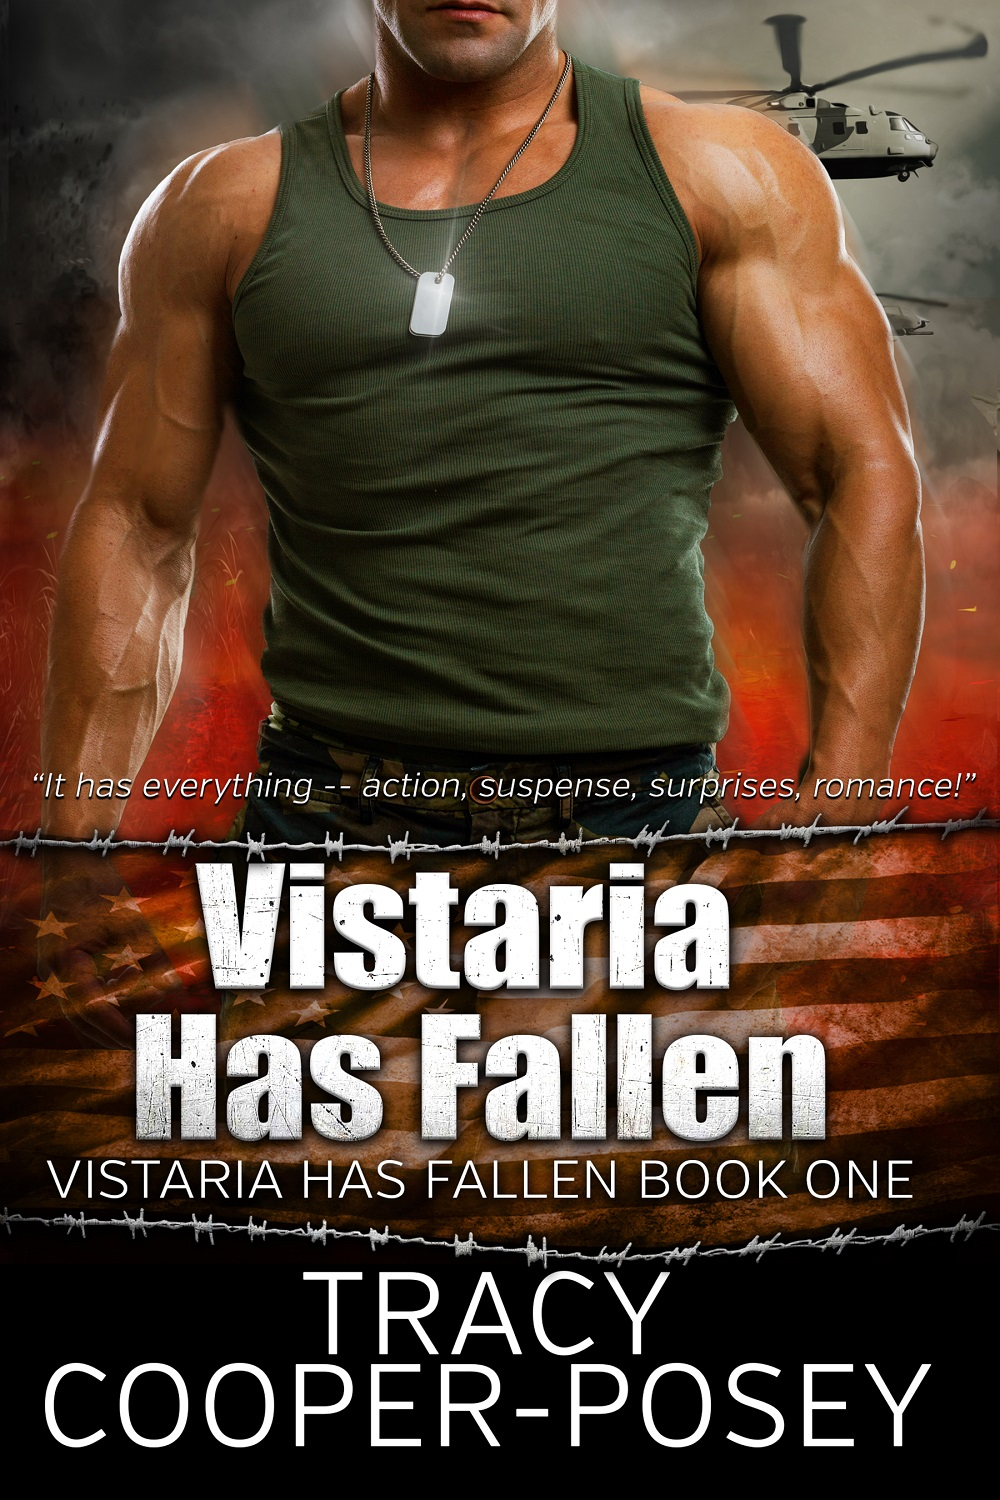 VISTARIA HAS FALLEN Free on Kobo Until the 22nd.